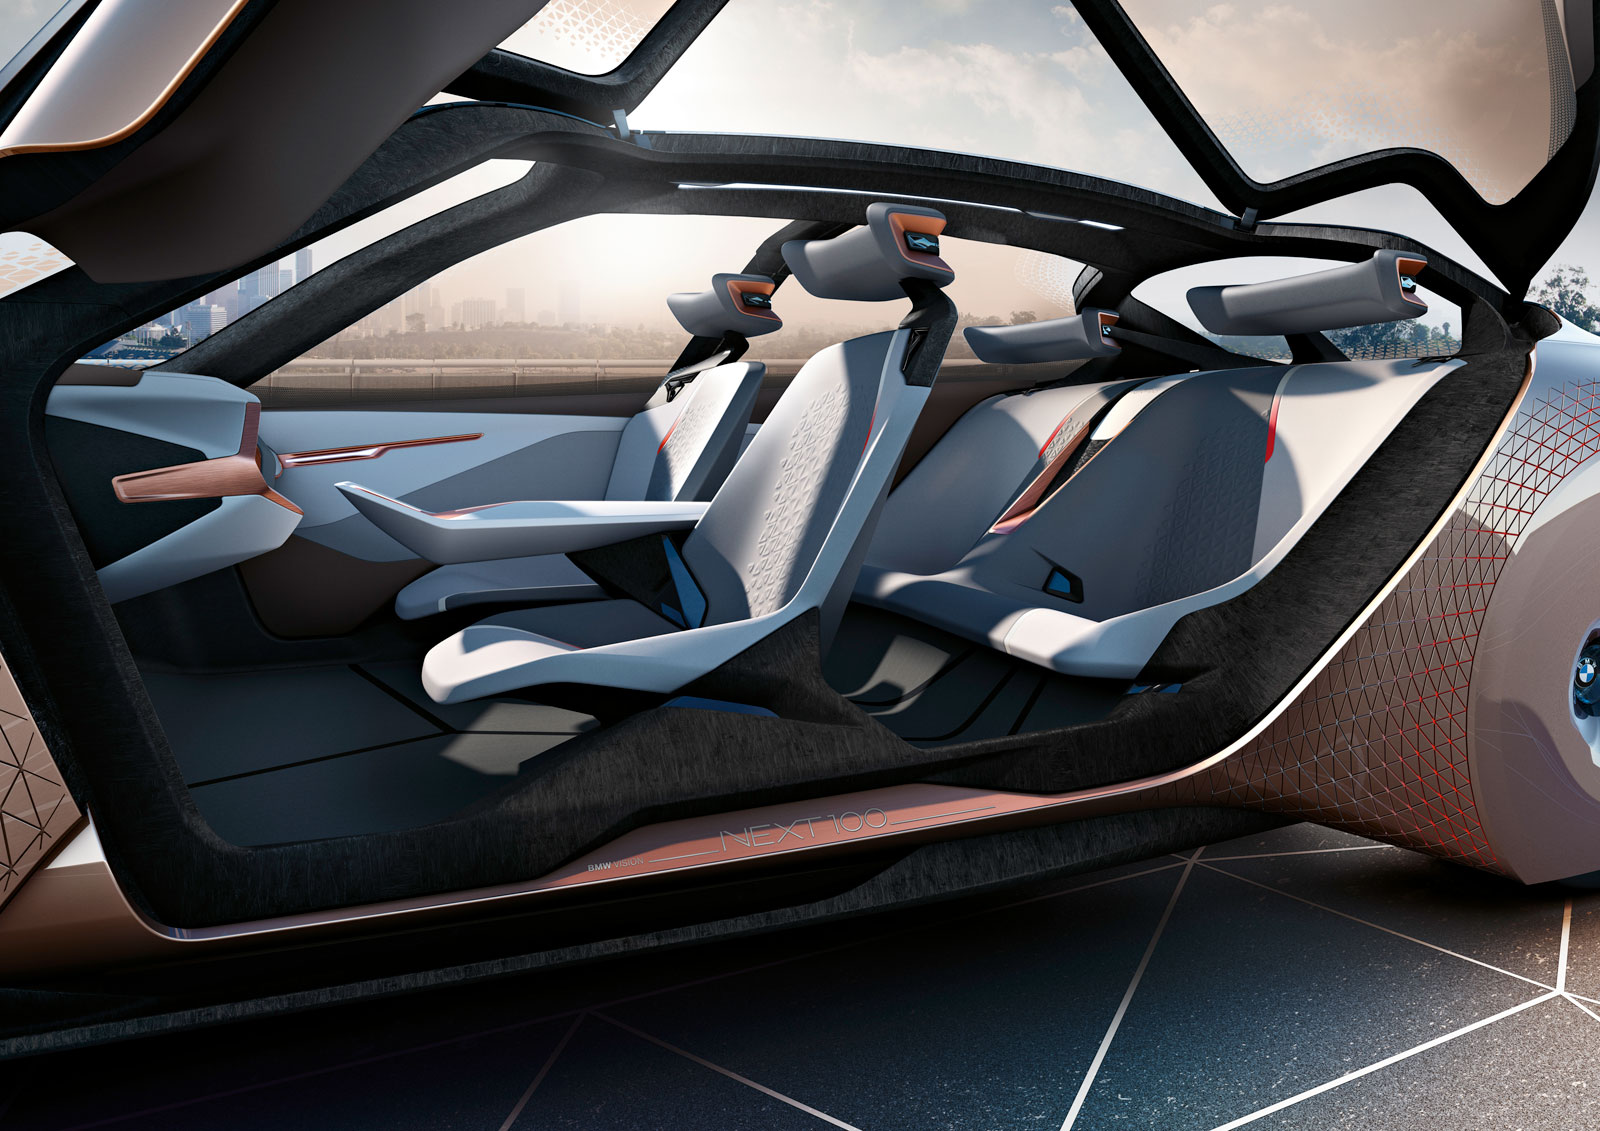 bmw vision next 100 concept interior car body design. Black Bedroom Furniture Sets. Home Design Ideas